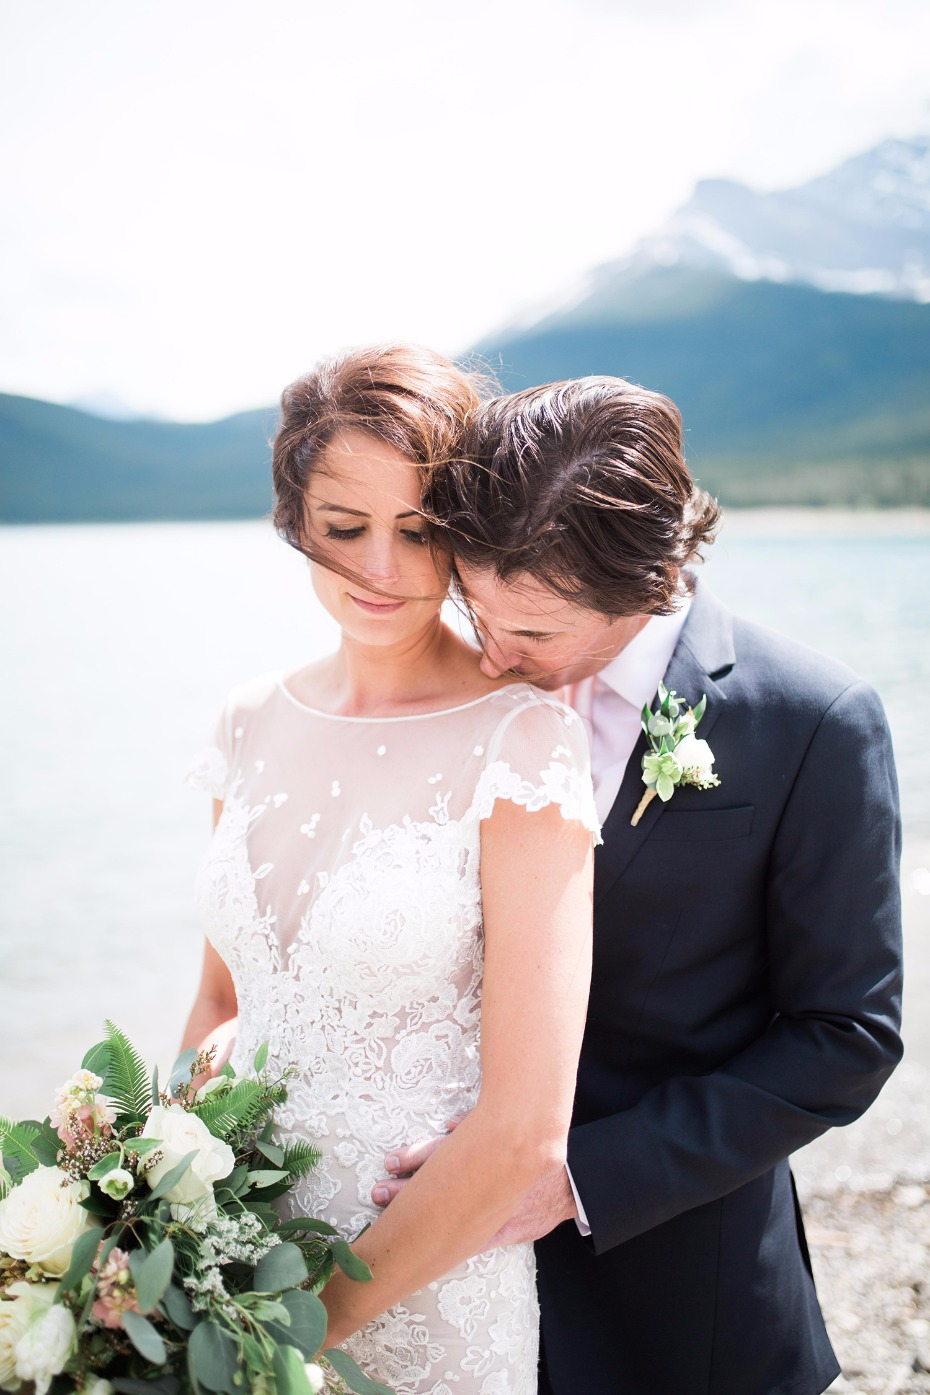 It's a rainy day for a Canadian Rockies wedding